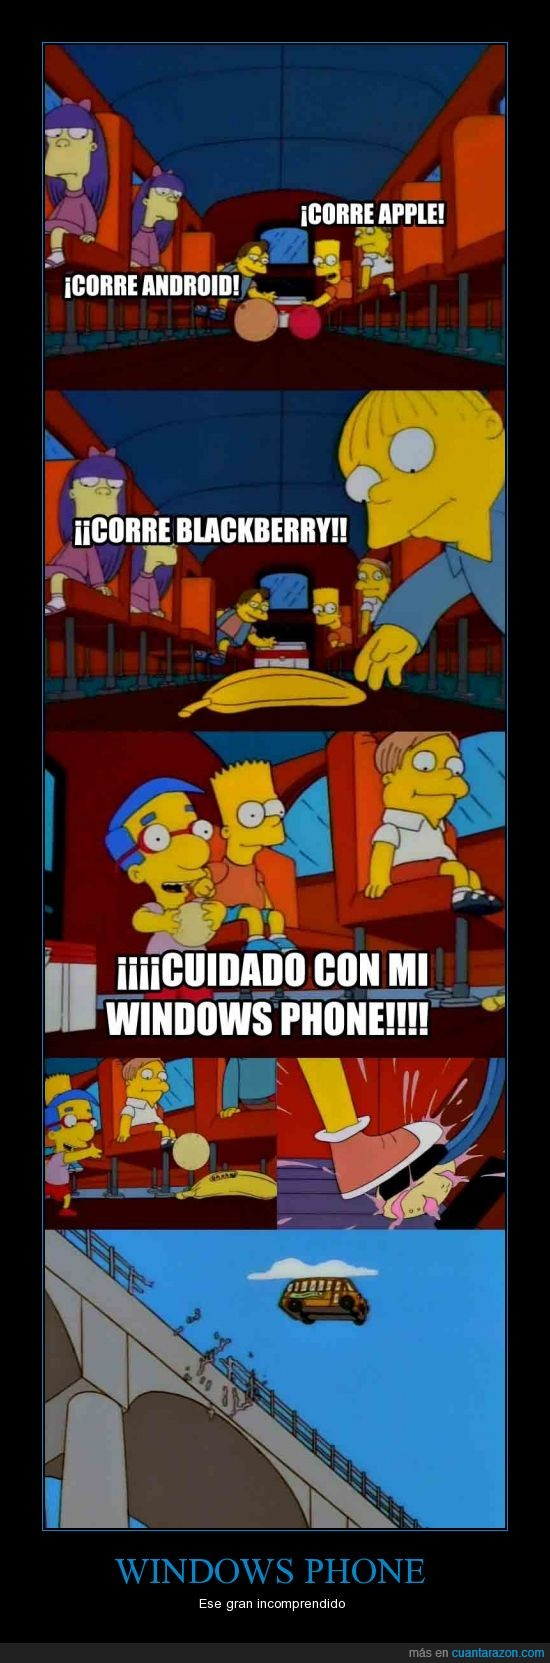 android,apple ios,blackberry,incomprendido,simpsons,sistemas,windows phone